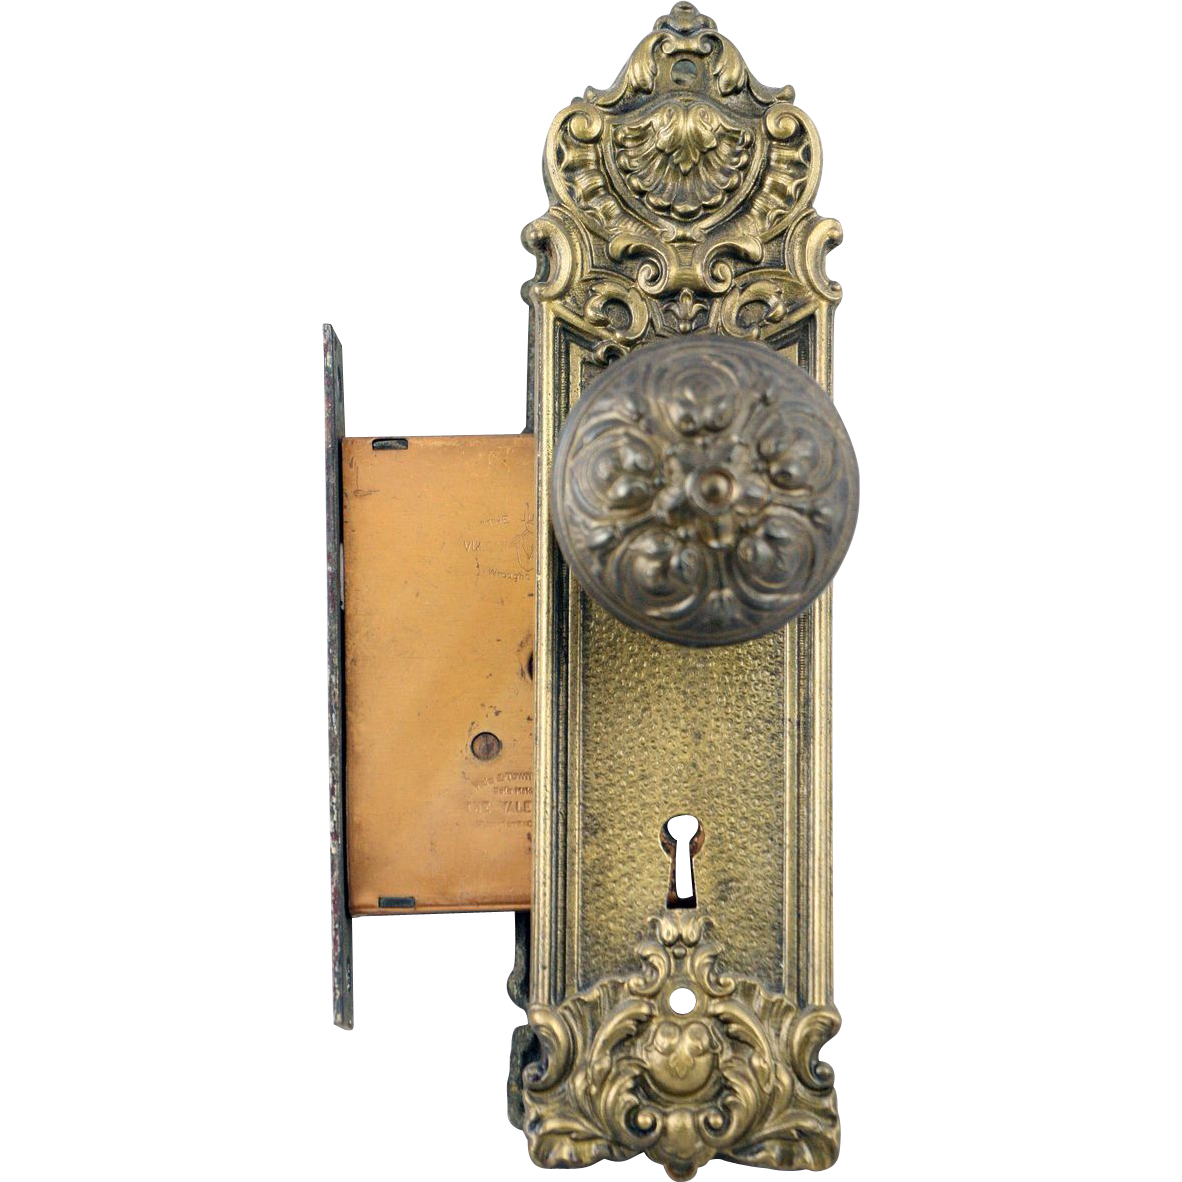 Victorian knob and mortise lock set